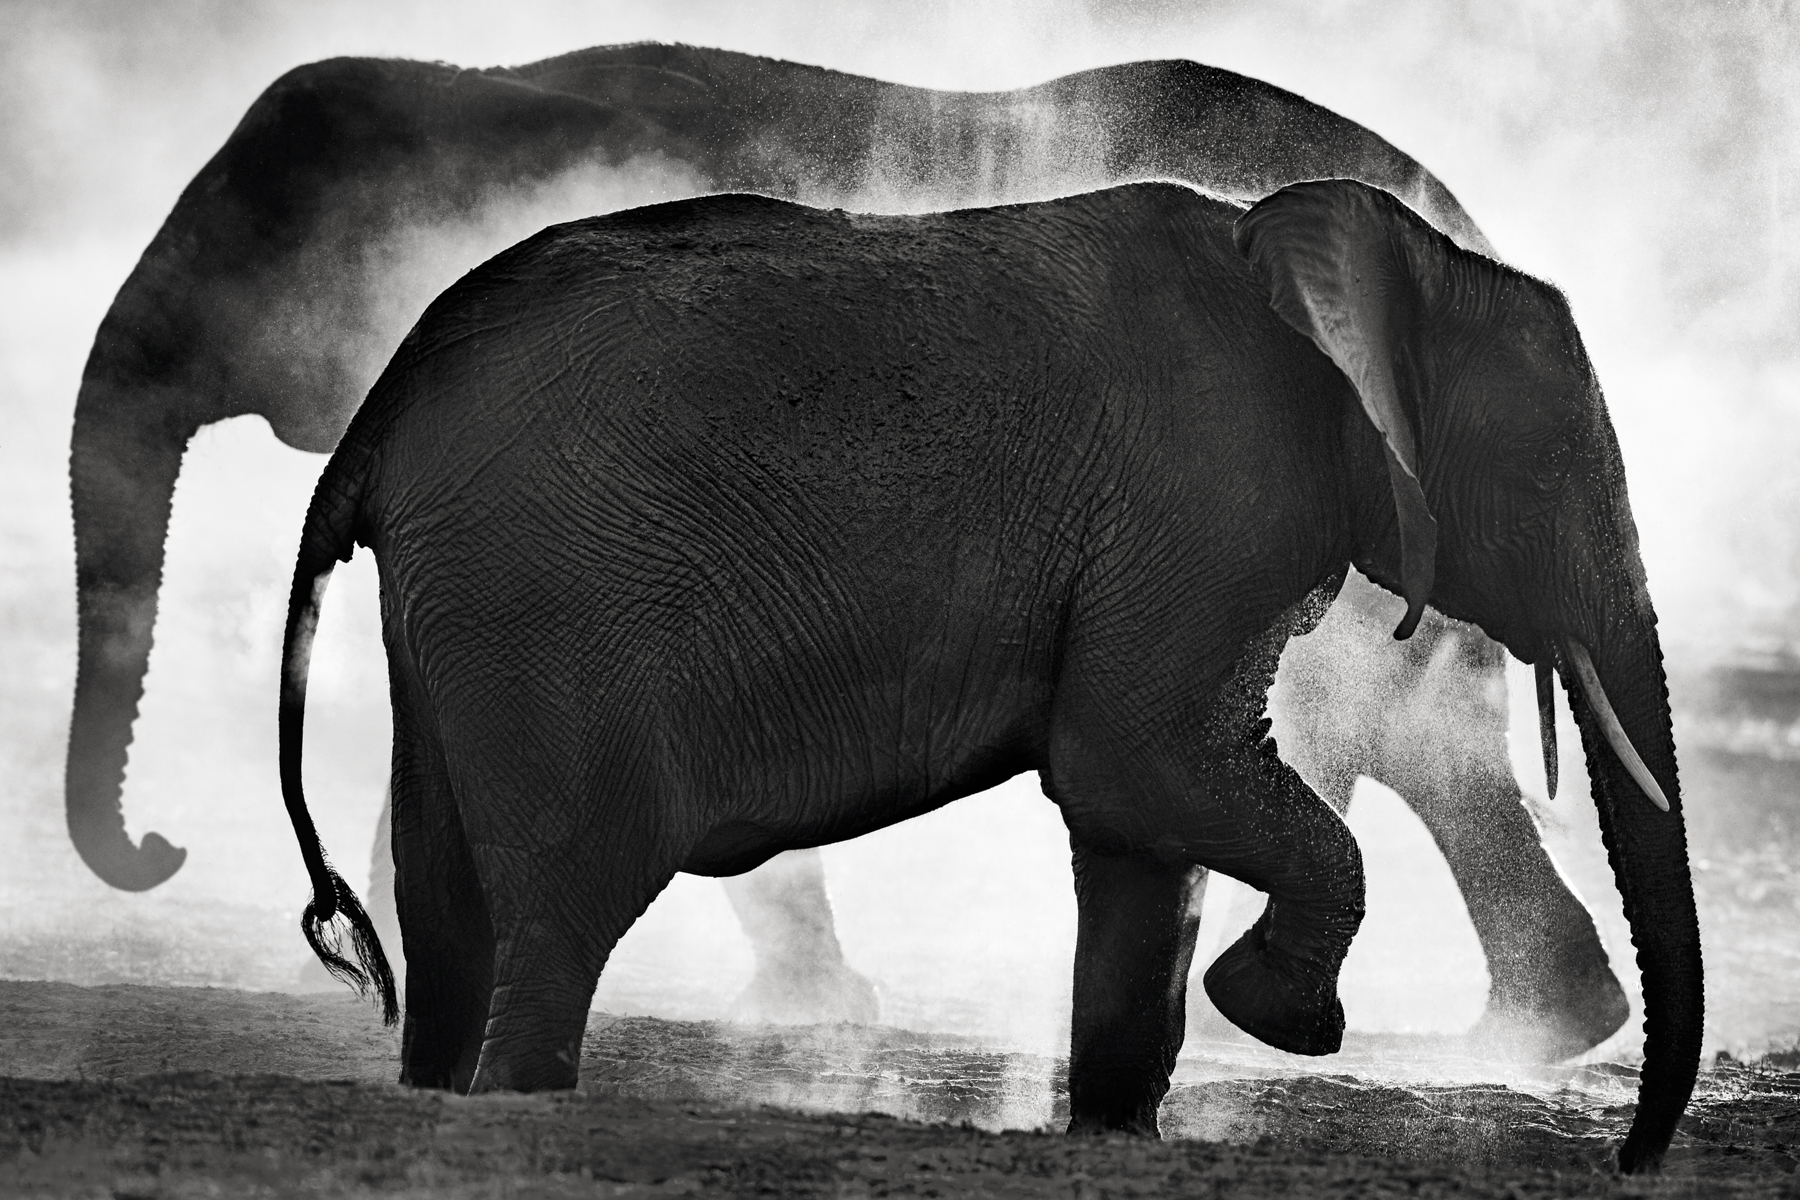 Elephant Dream - Another World - © Kyriakos Kaziras